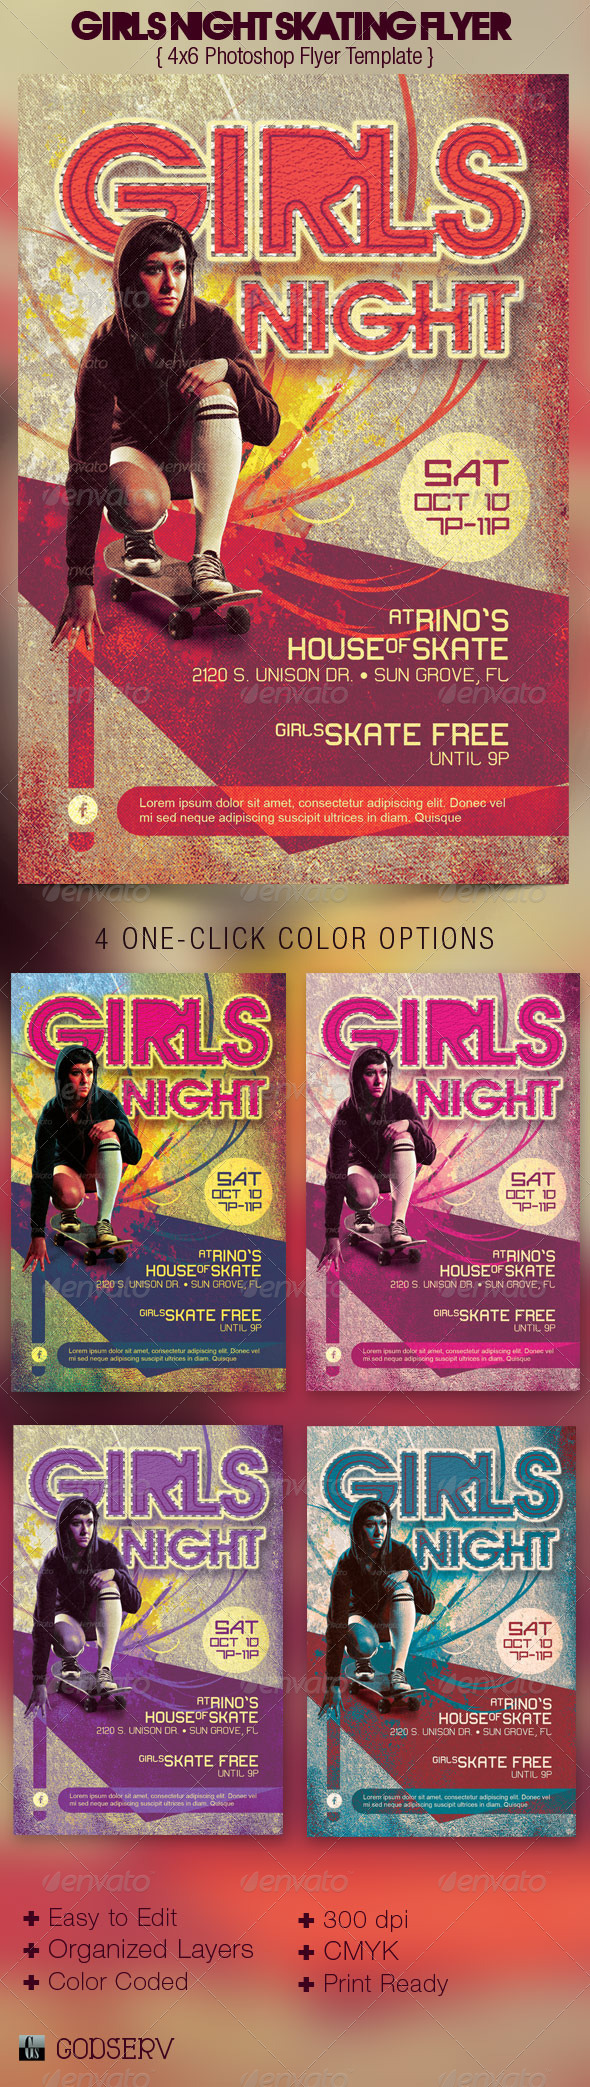 Girls Night Retro Skating Flyer Template - Events Flyers